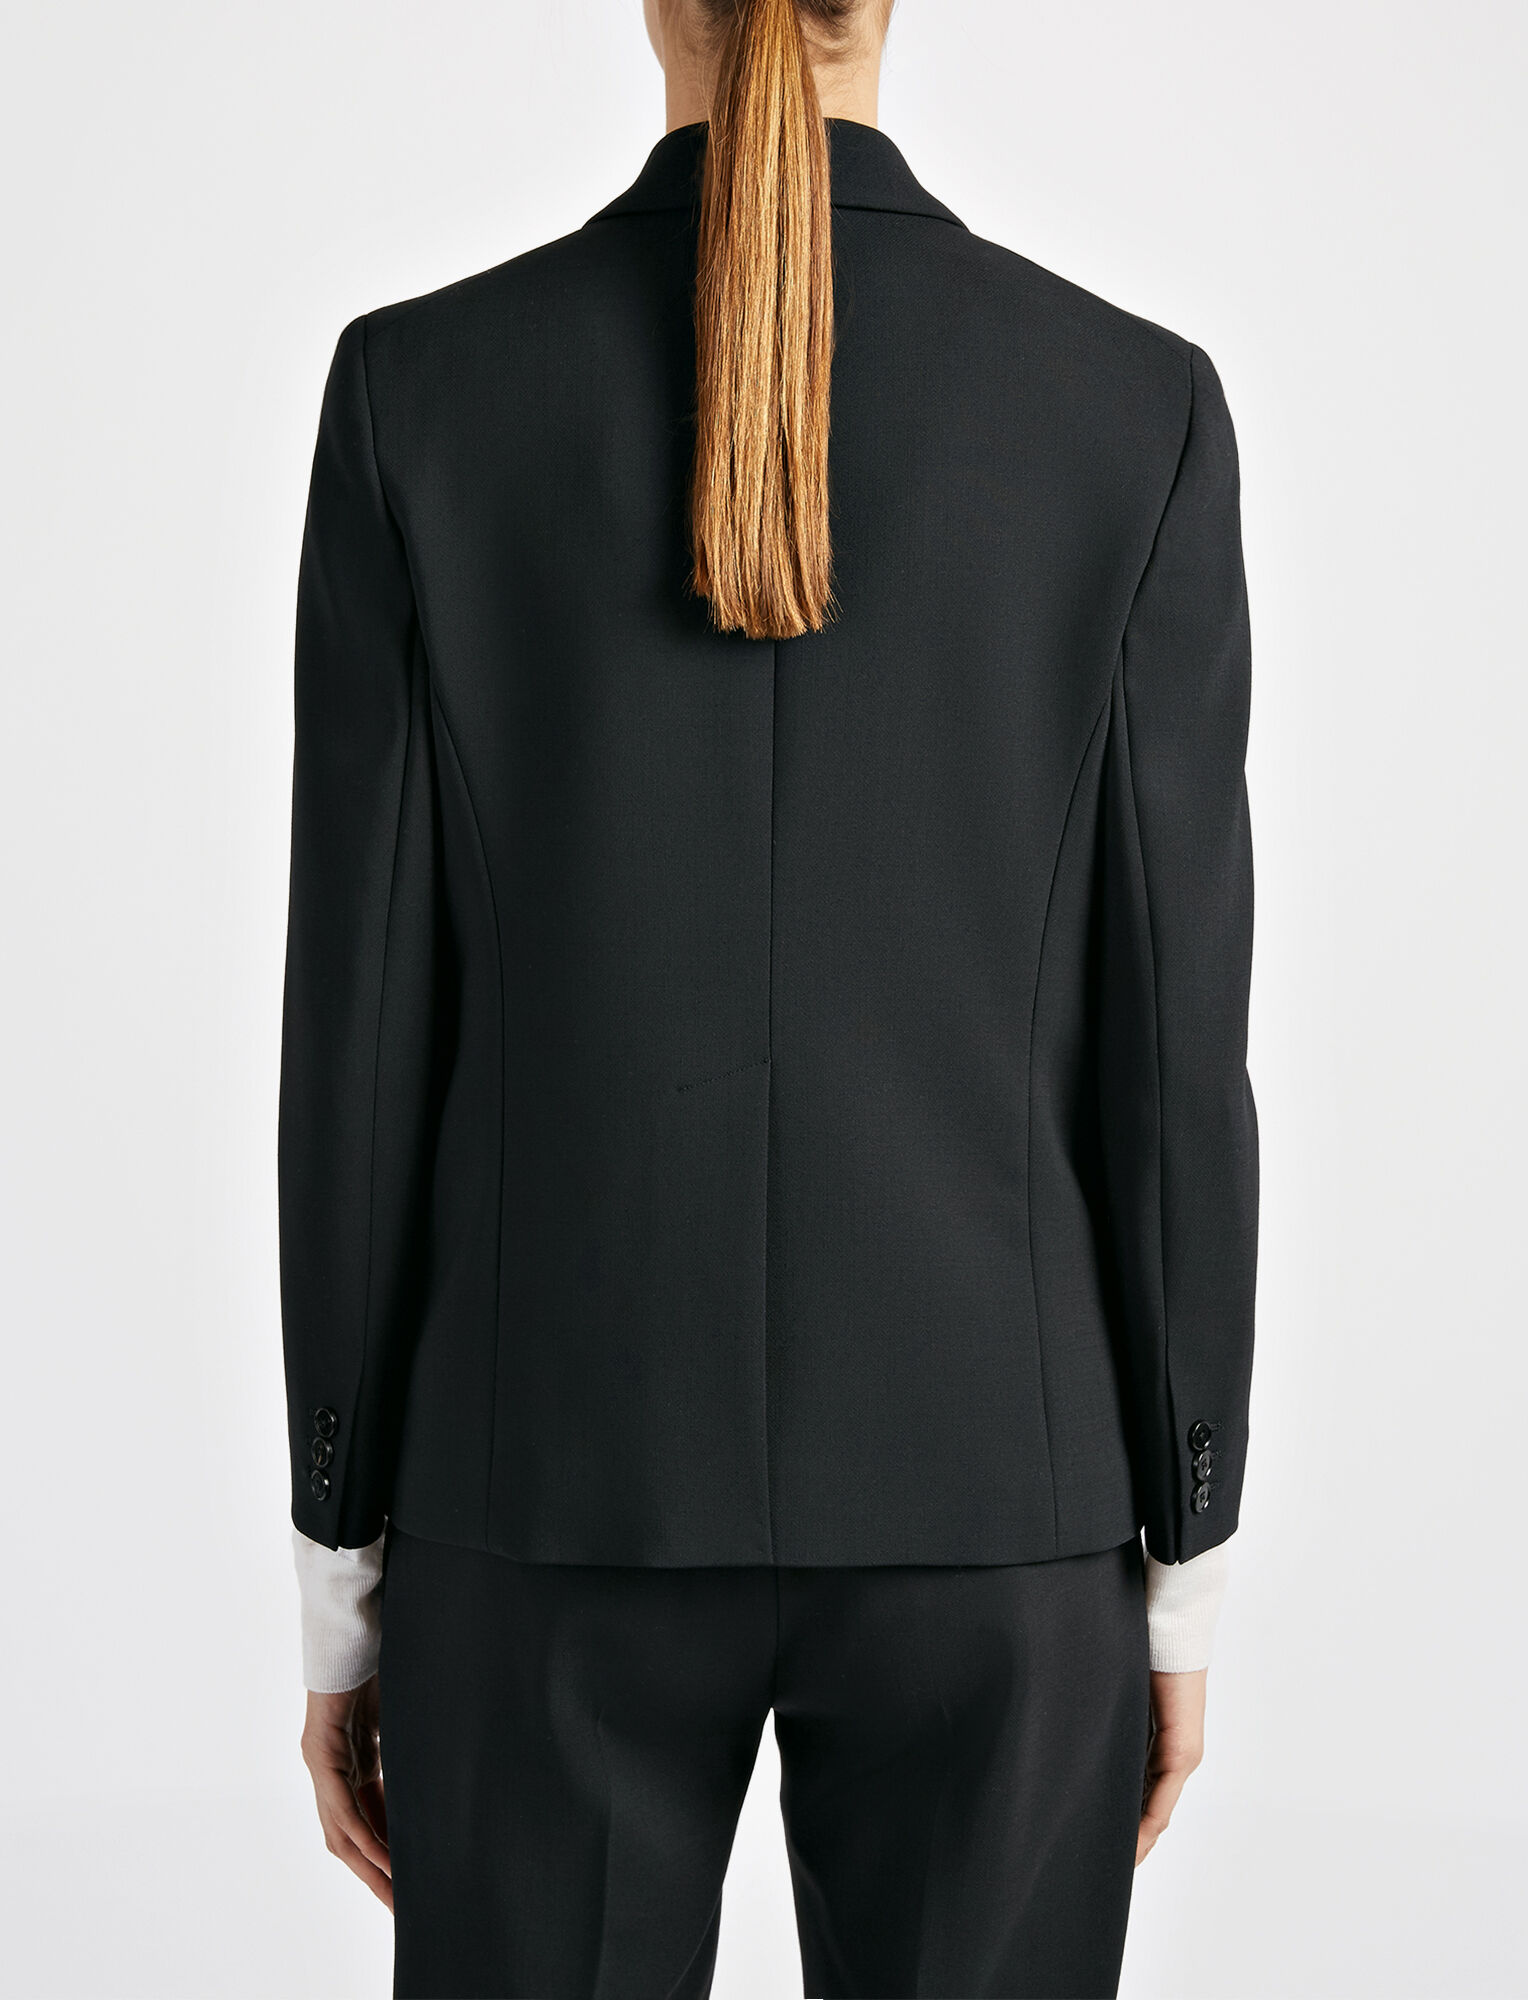 Joseph, Stretch Wool Savoy Jacket, in BLACK